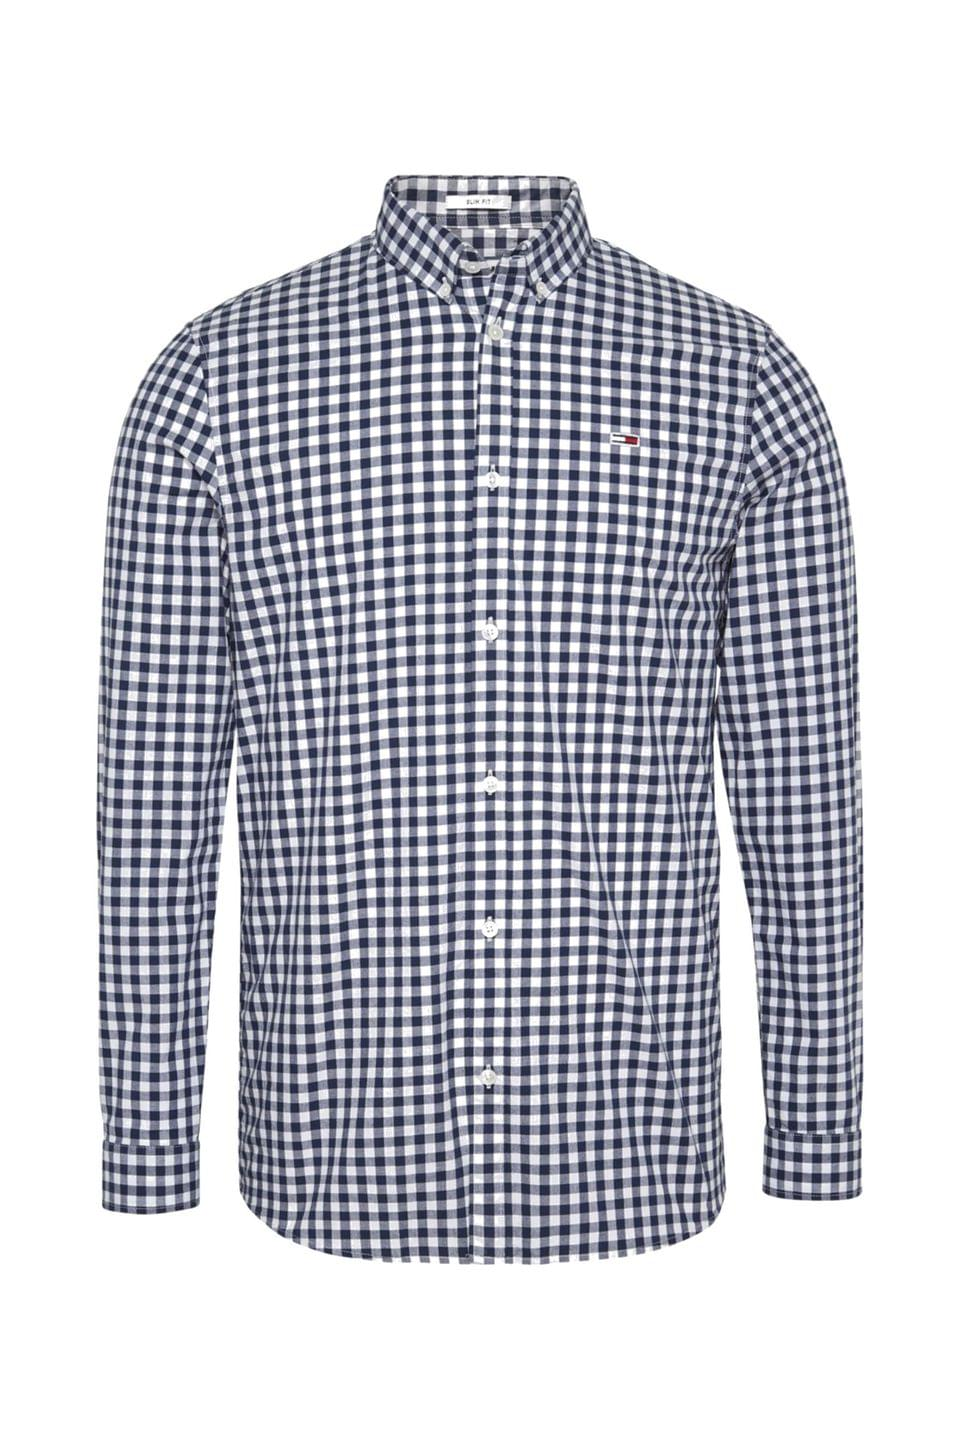 Men's Tommy Jeans Blue Gingham Shirt